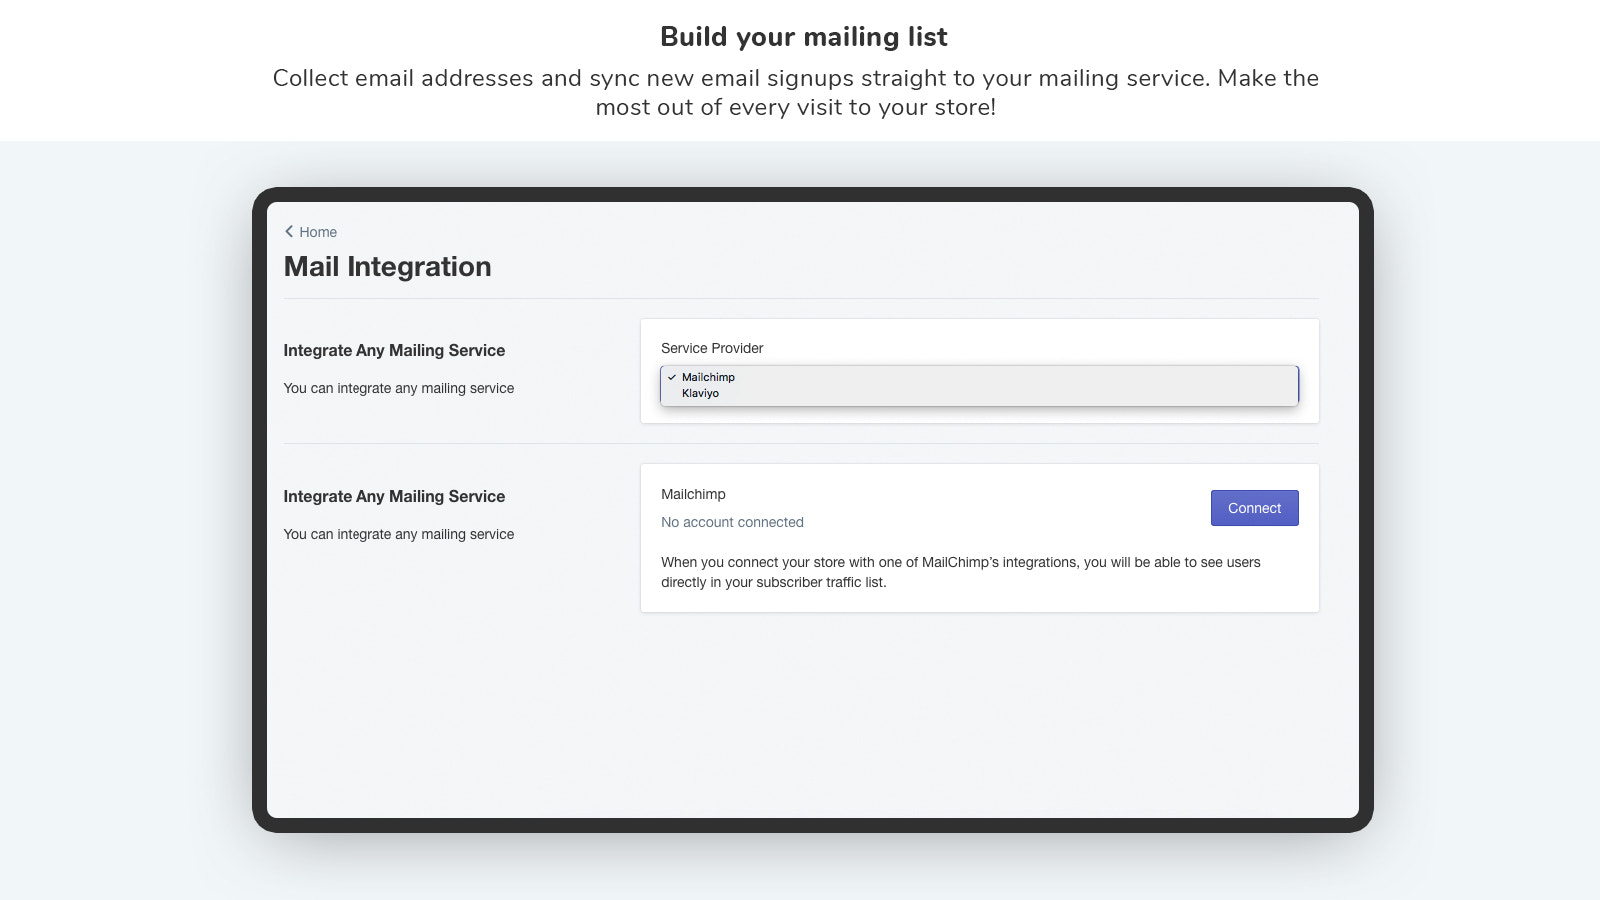 Popup for sign-ups with email integration service